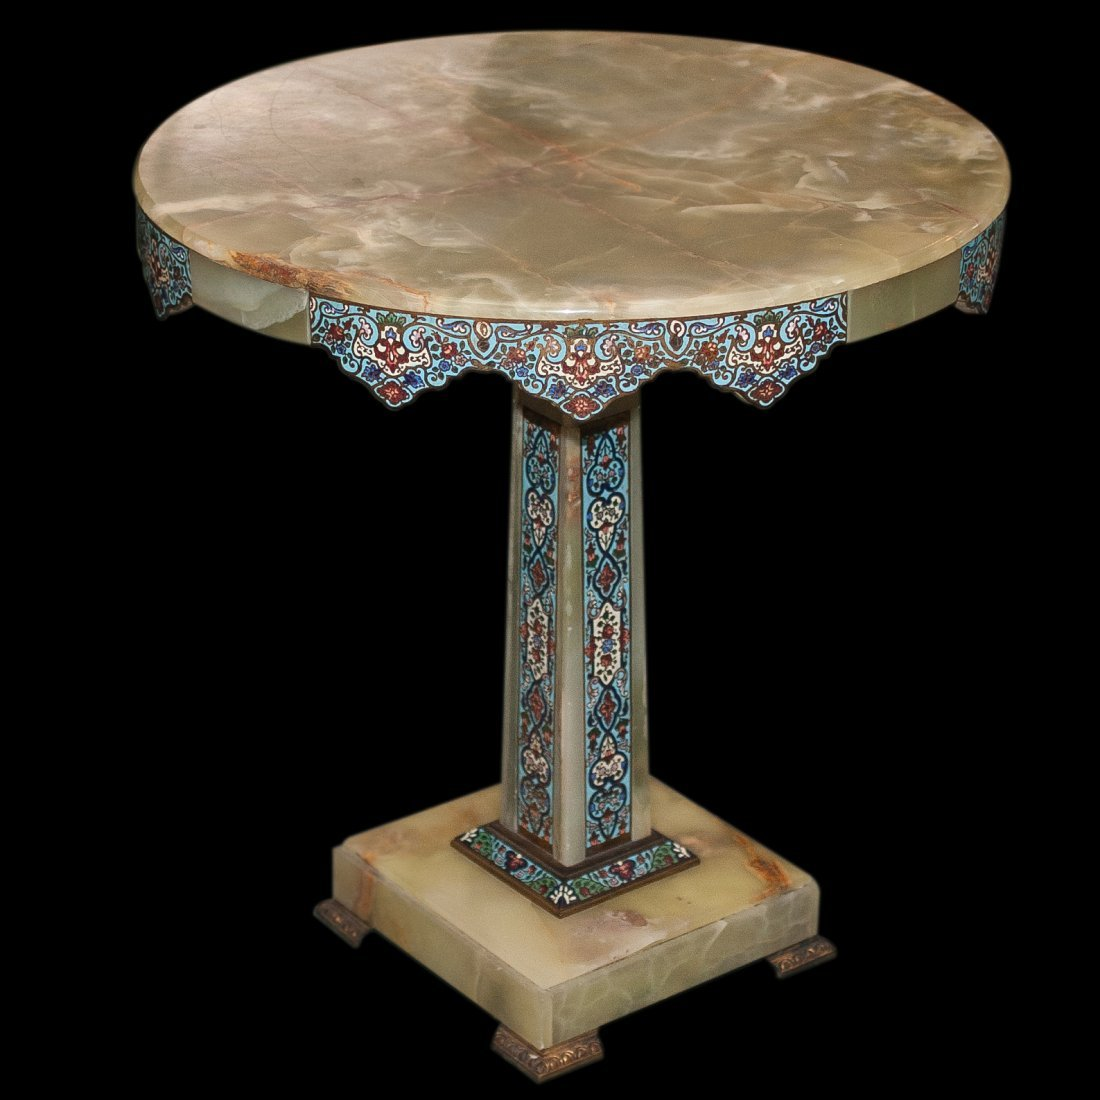 Champleve Onyx Table